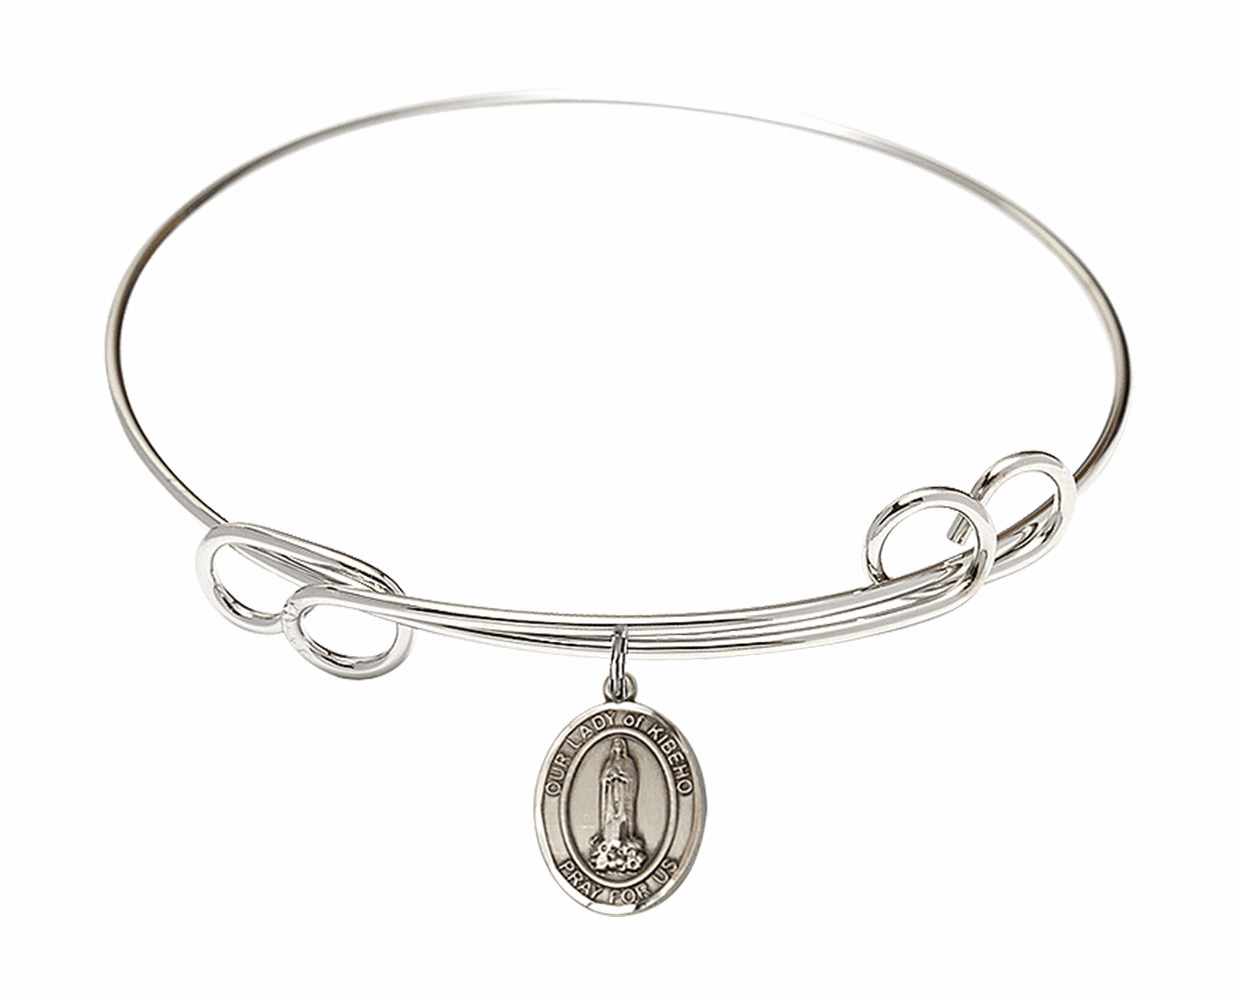 Round Loop Our Lady of Kibeho Bangle Charm Bracelet by Bliss